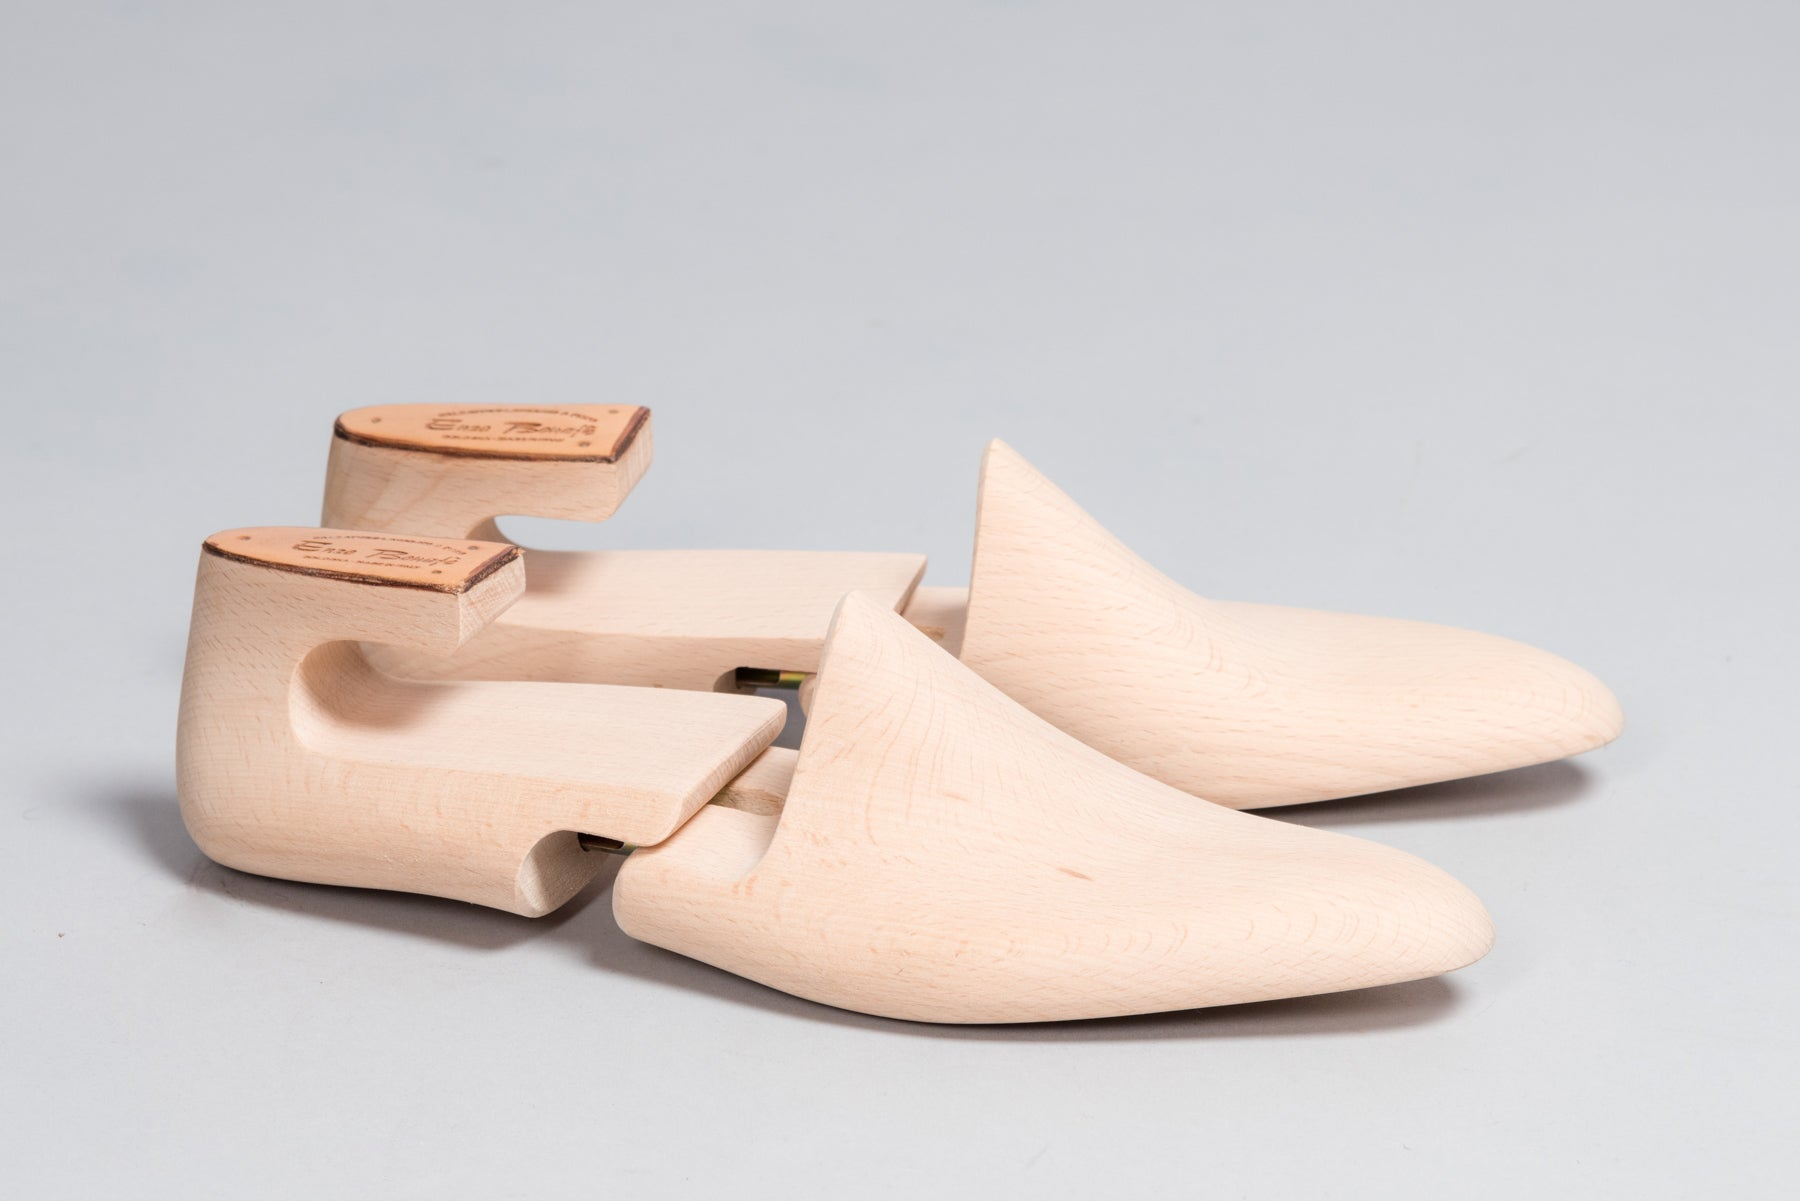 Enzo Bonafé Shoe Trees